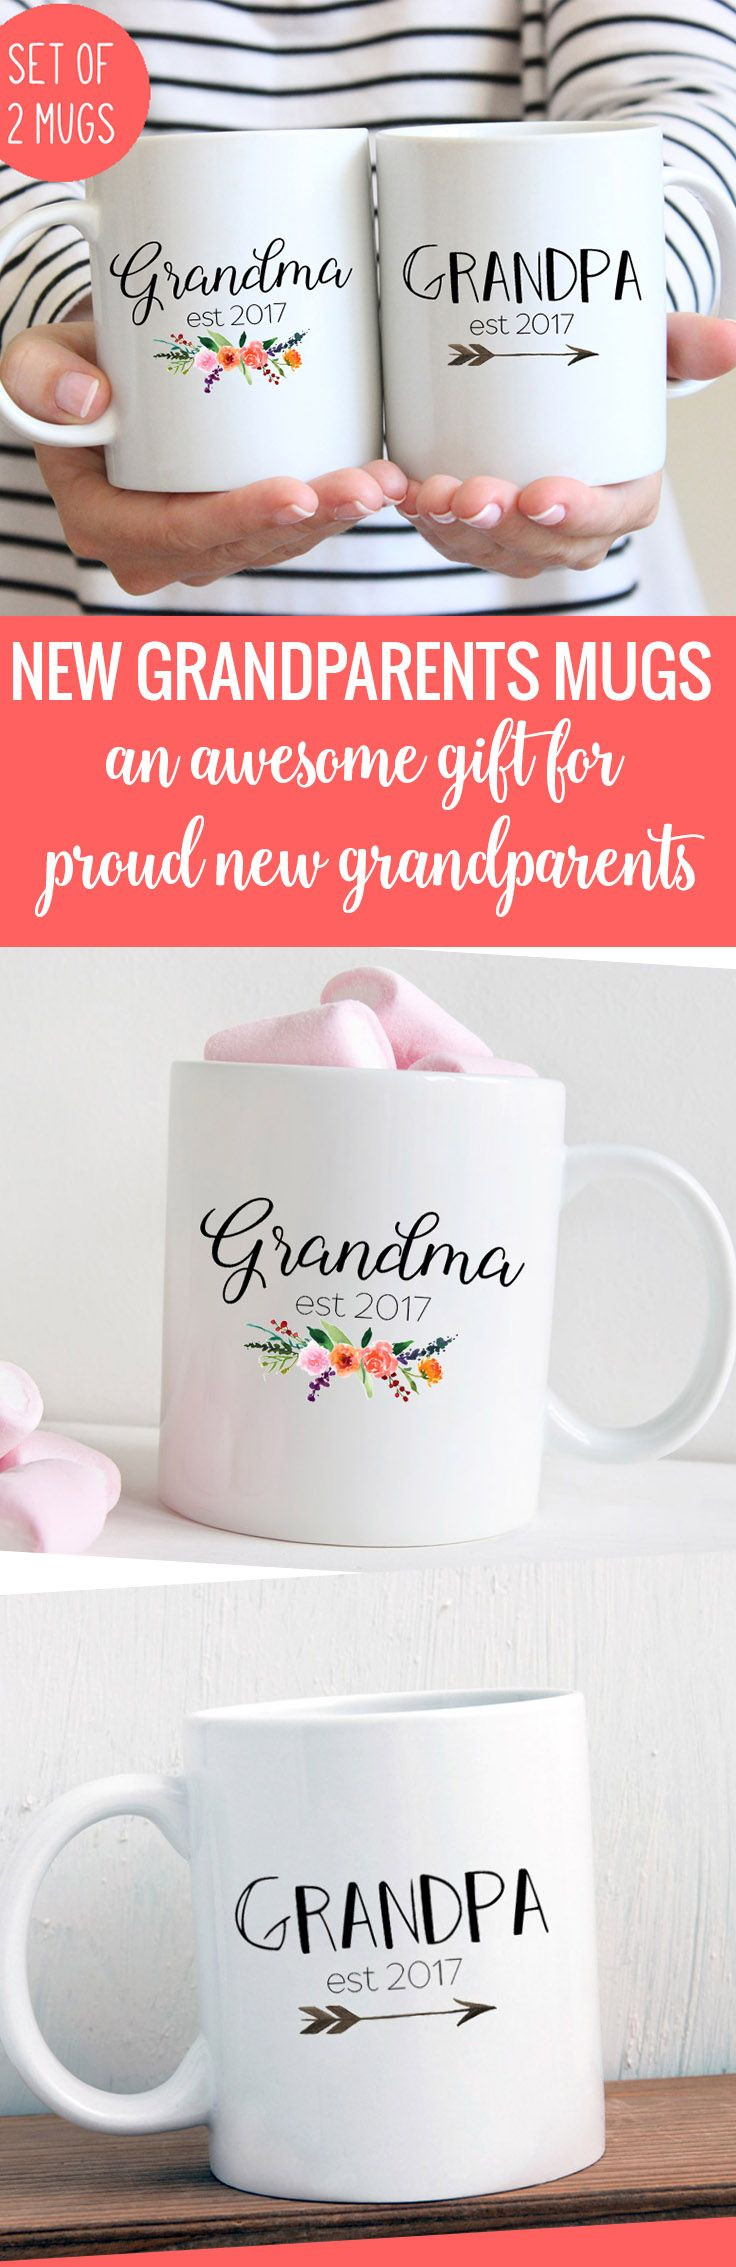 Best ideas about Gift Ideas For New Grandparents . Save or Pin 25 best ideas about New grandparent ts on Pinterest Now.